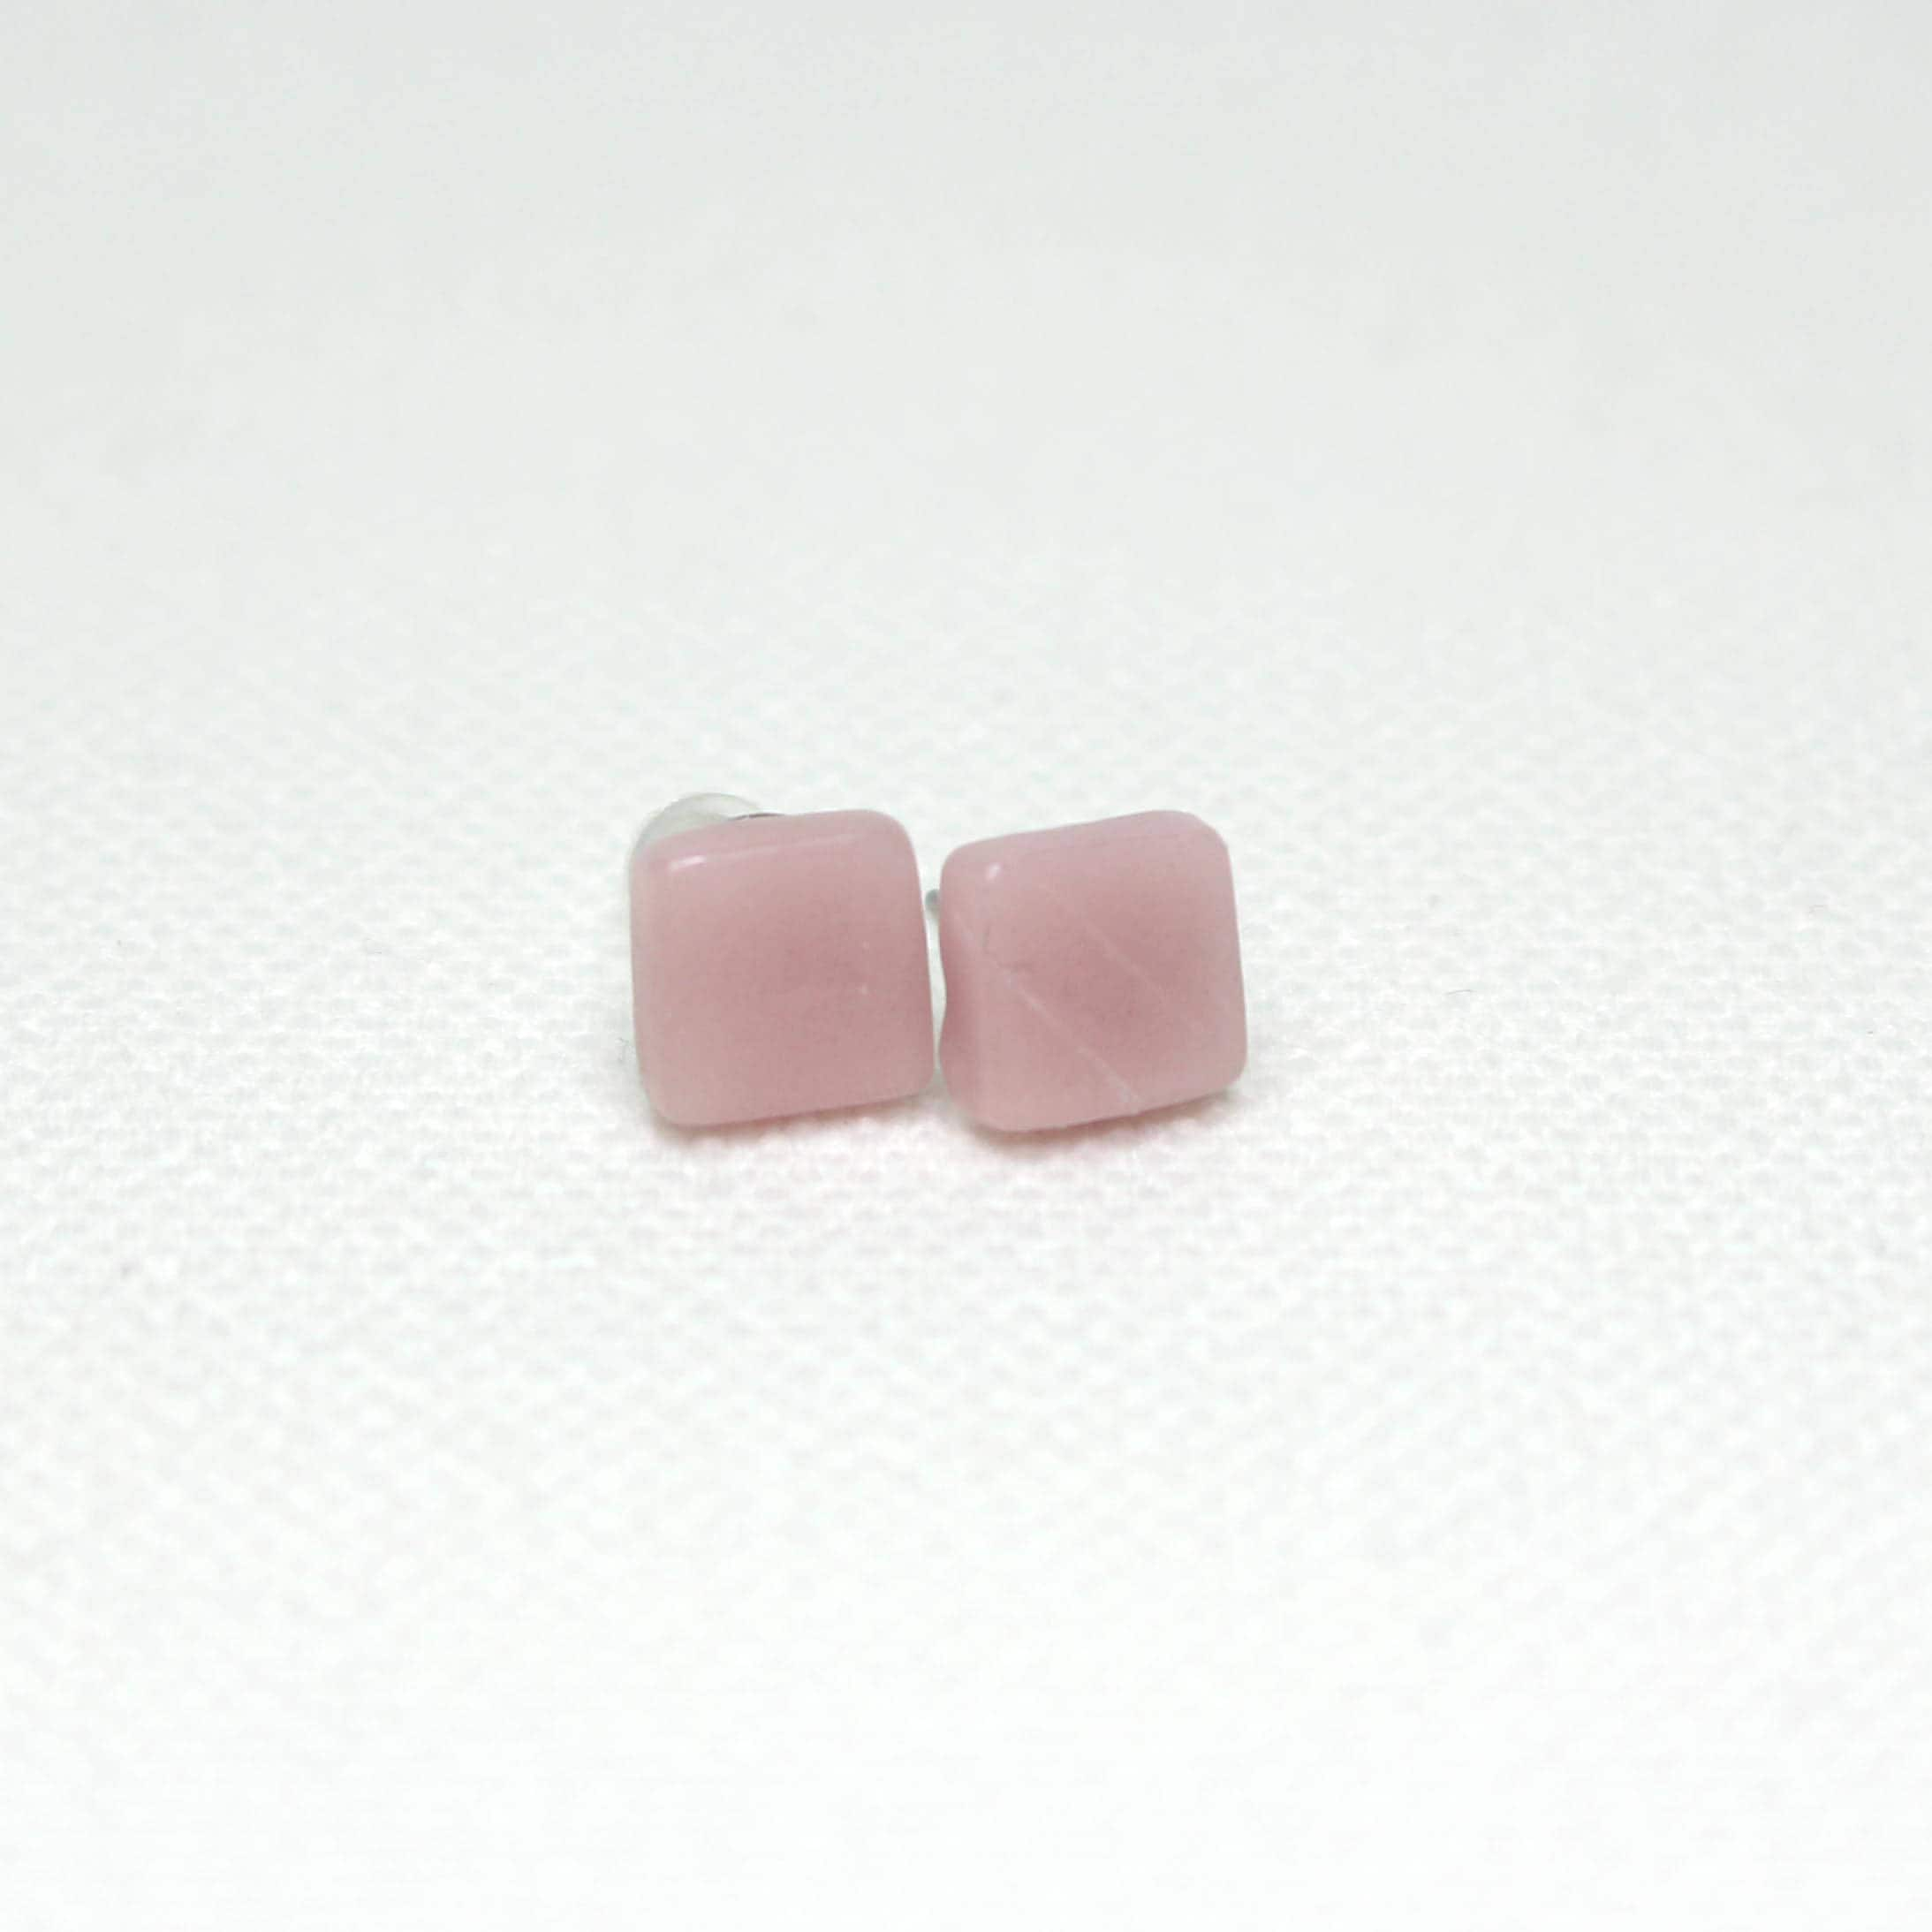 ear samples studs ashes colour silver handmade product within stud scattering glass earrings and